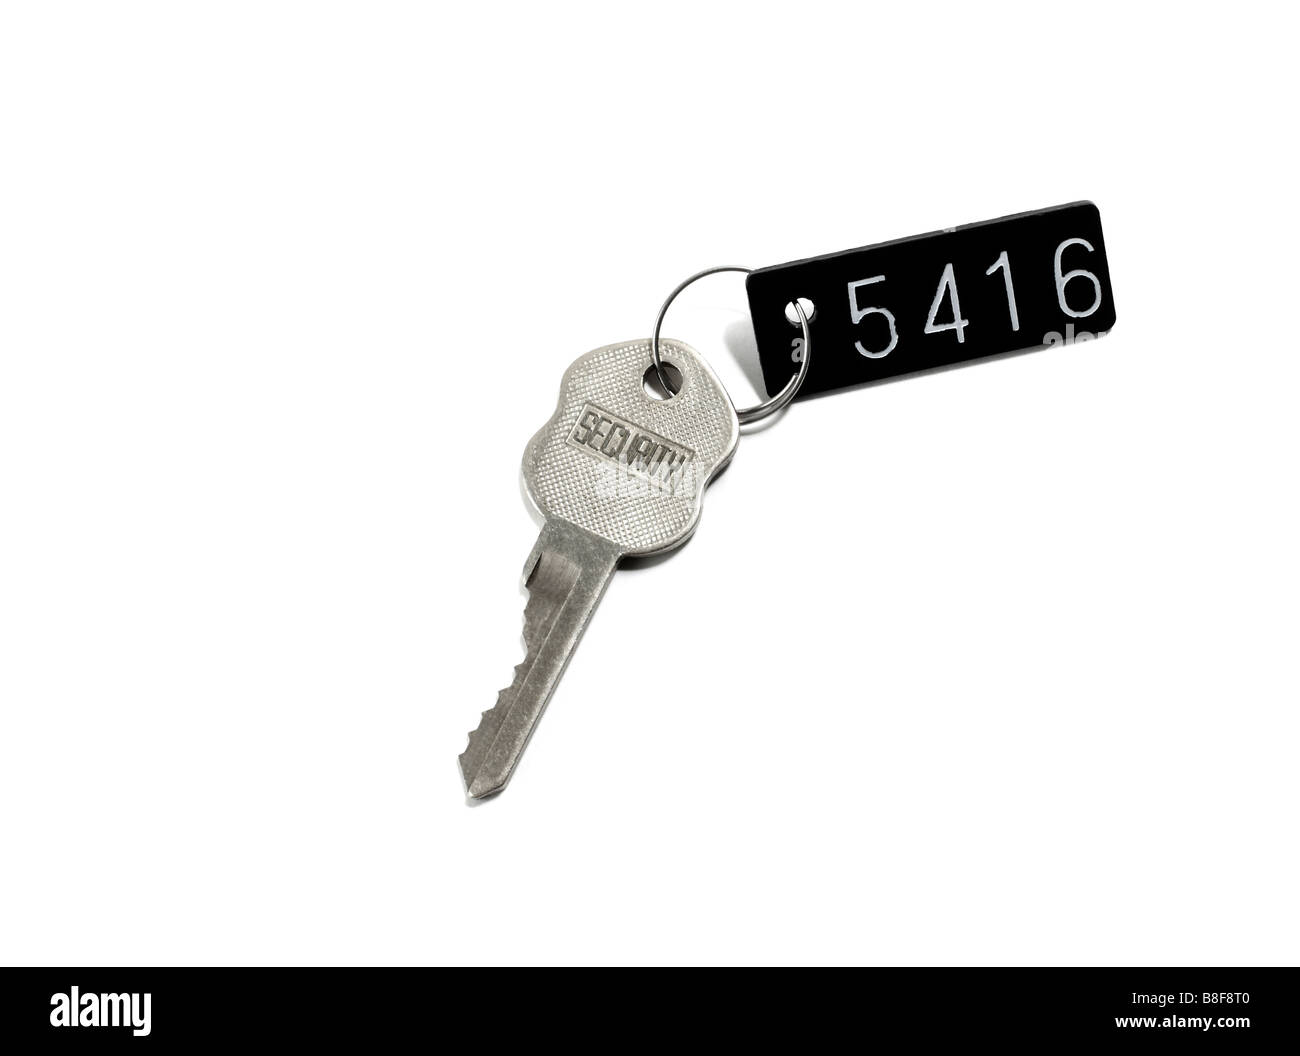 Safety deposit box key and tag - Stock Image